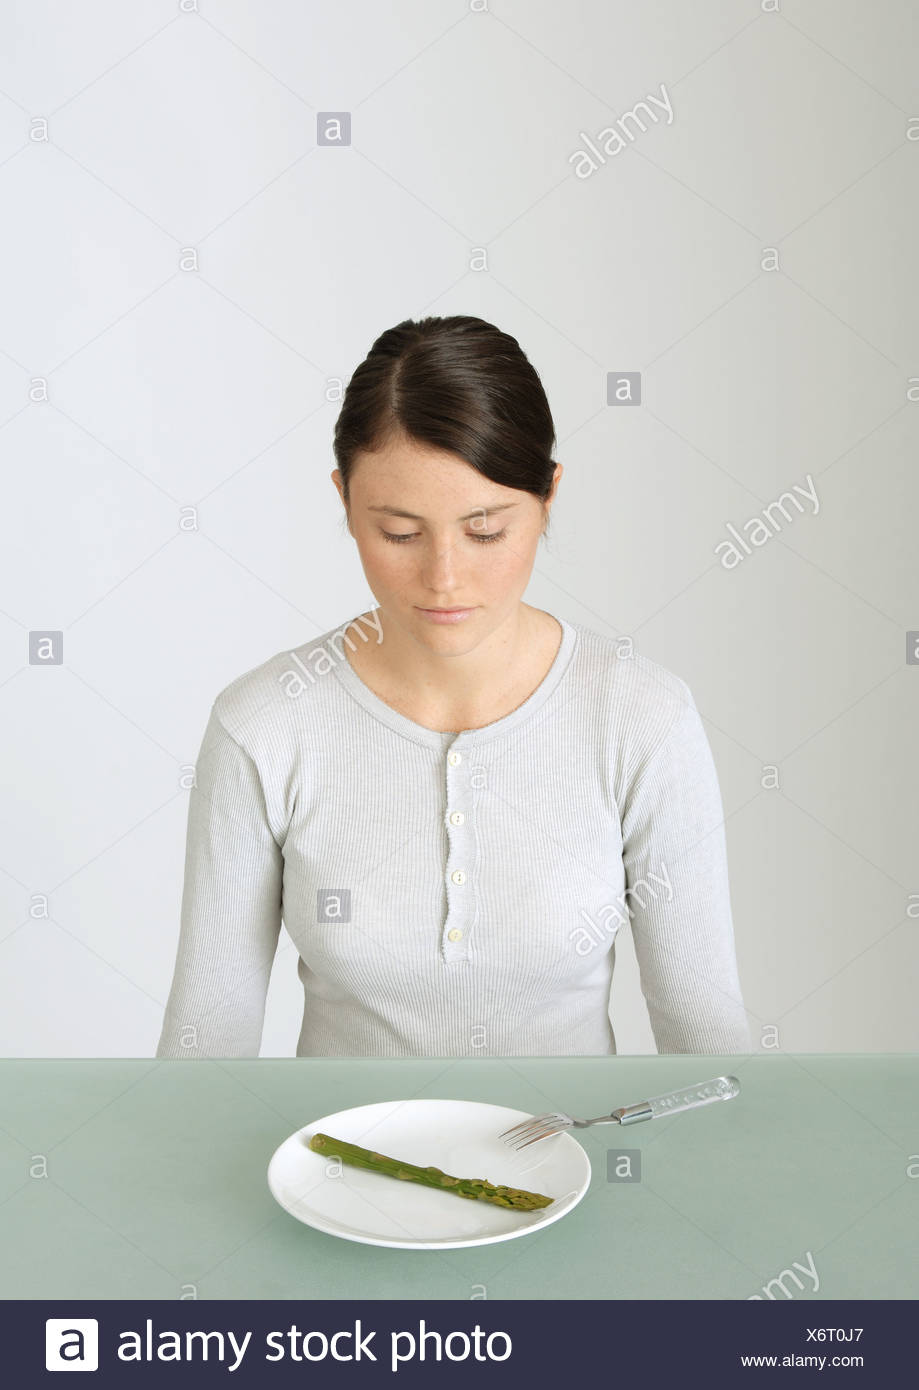 Young woman looking down at plate with single asparagus - Stock Image